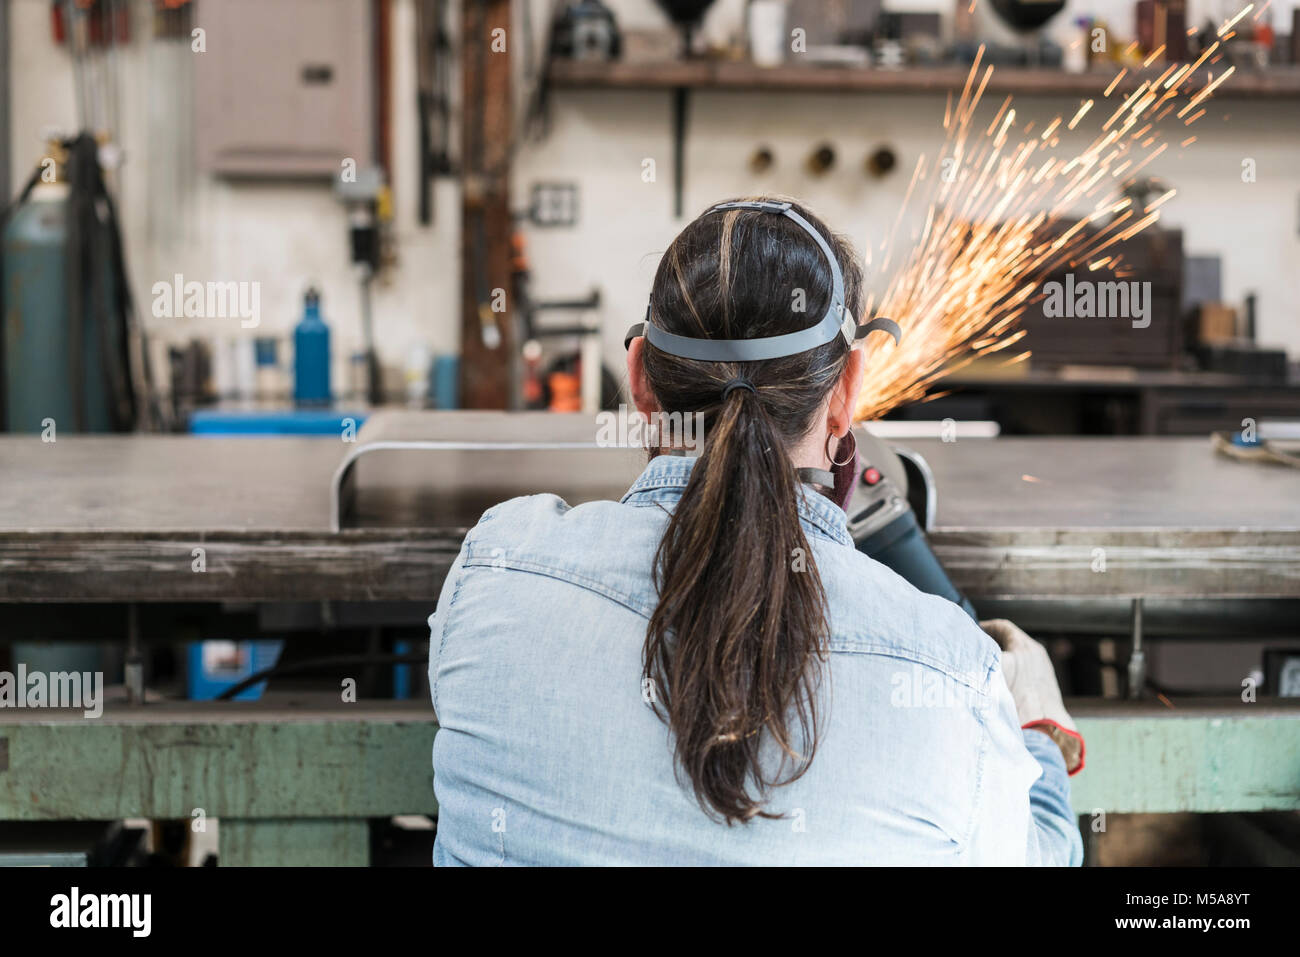 Rear view of woman wearing safety glasses and dust mask standing in metal workshop, using power grinder, sparks - Stock Image